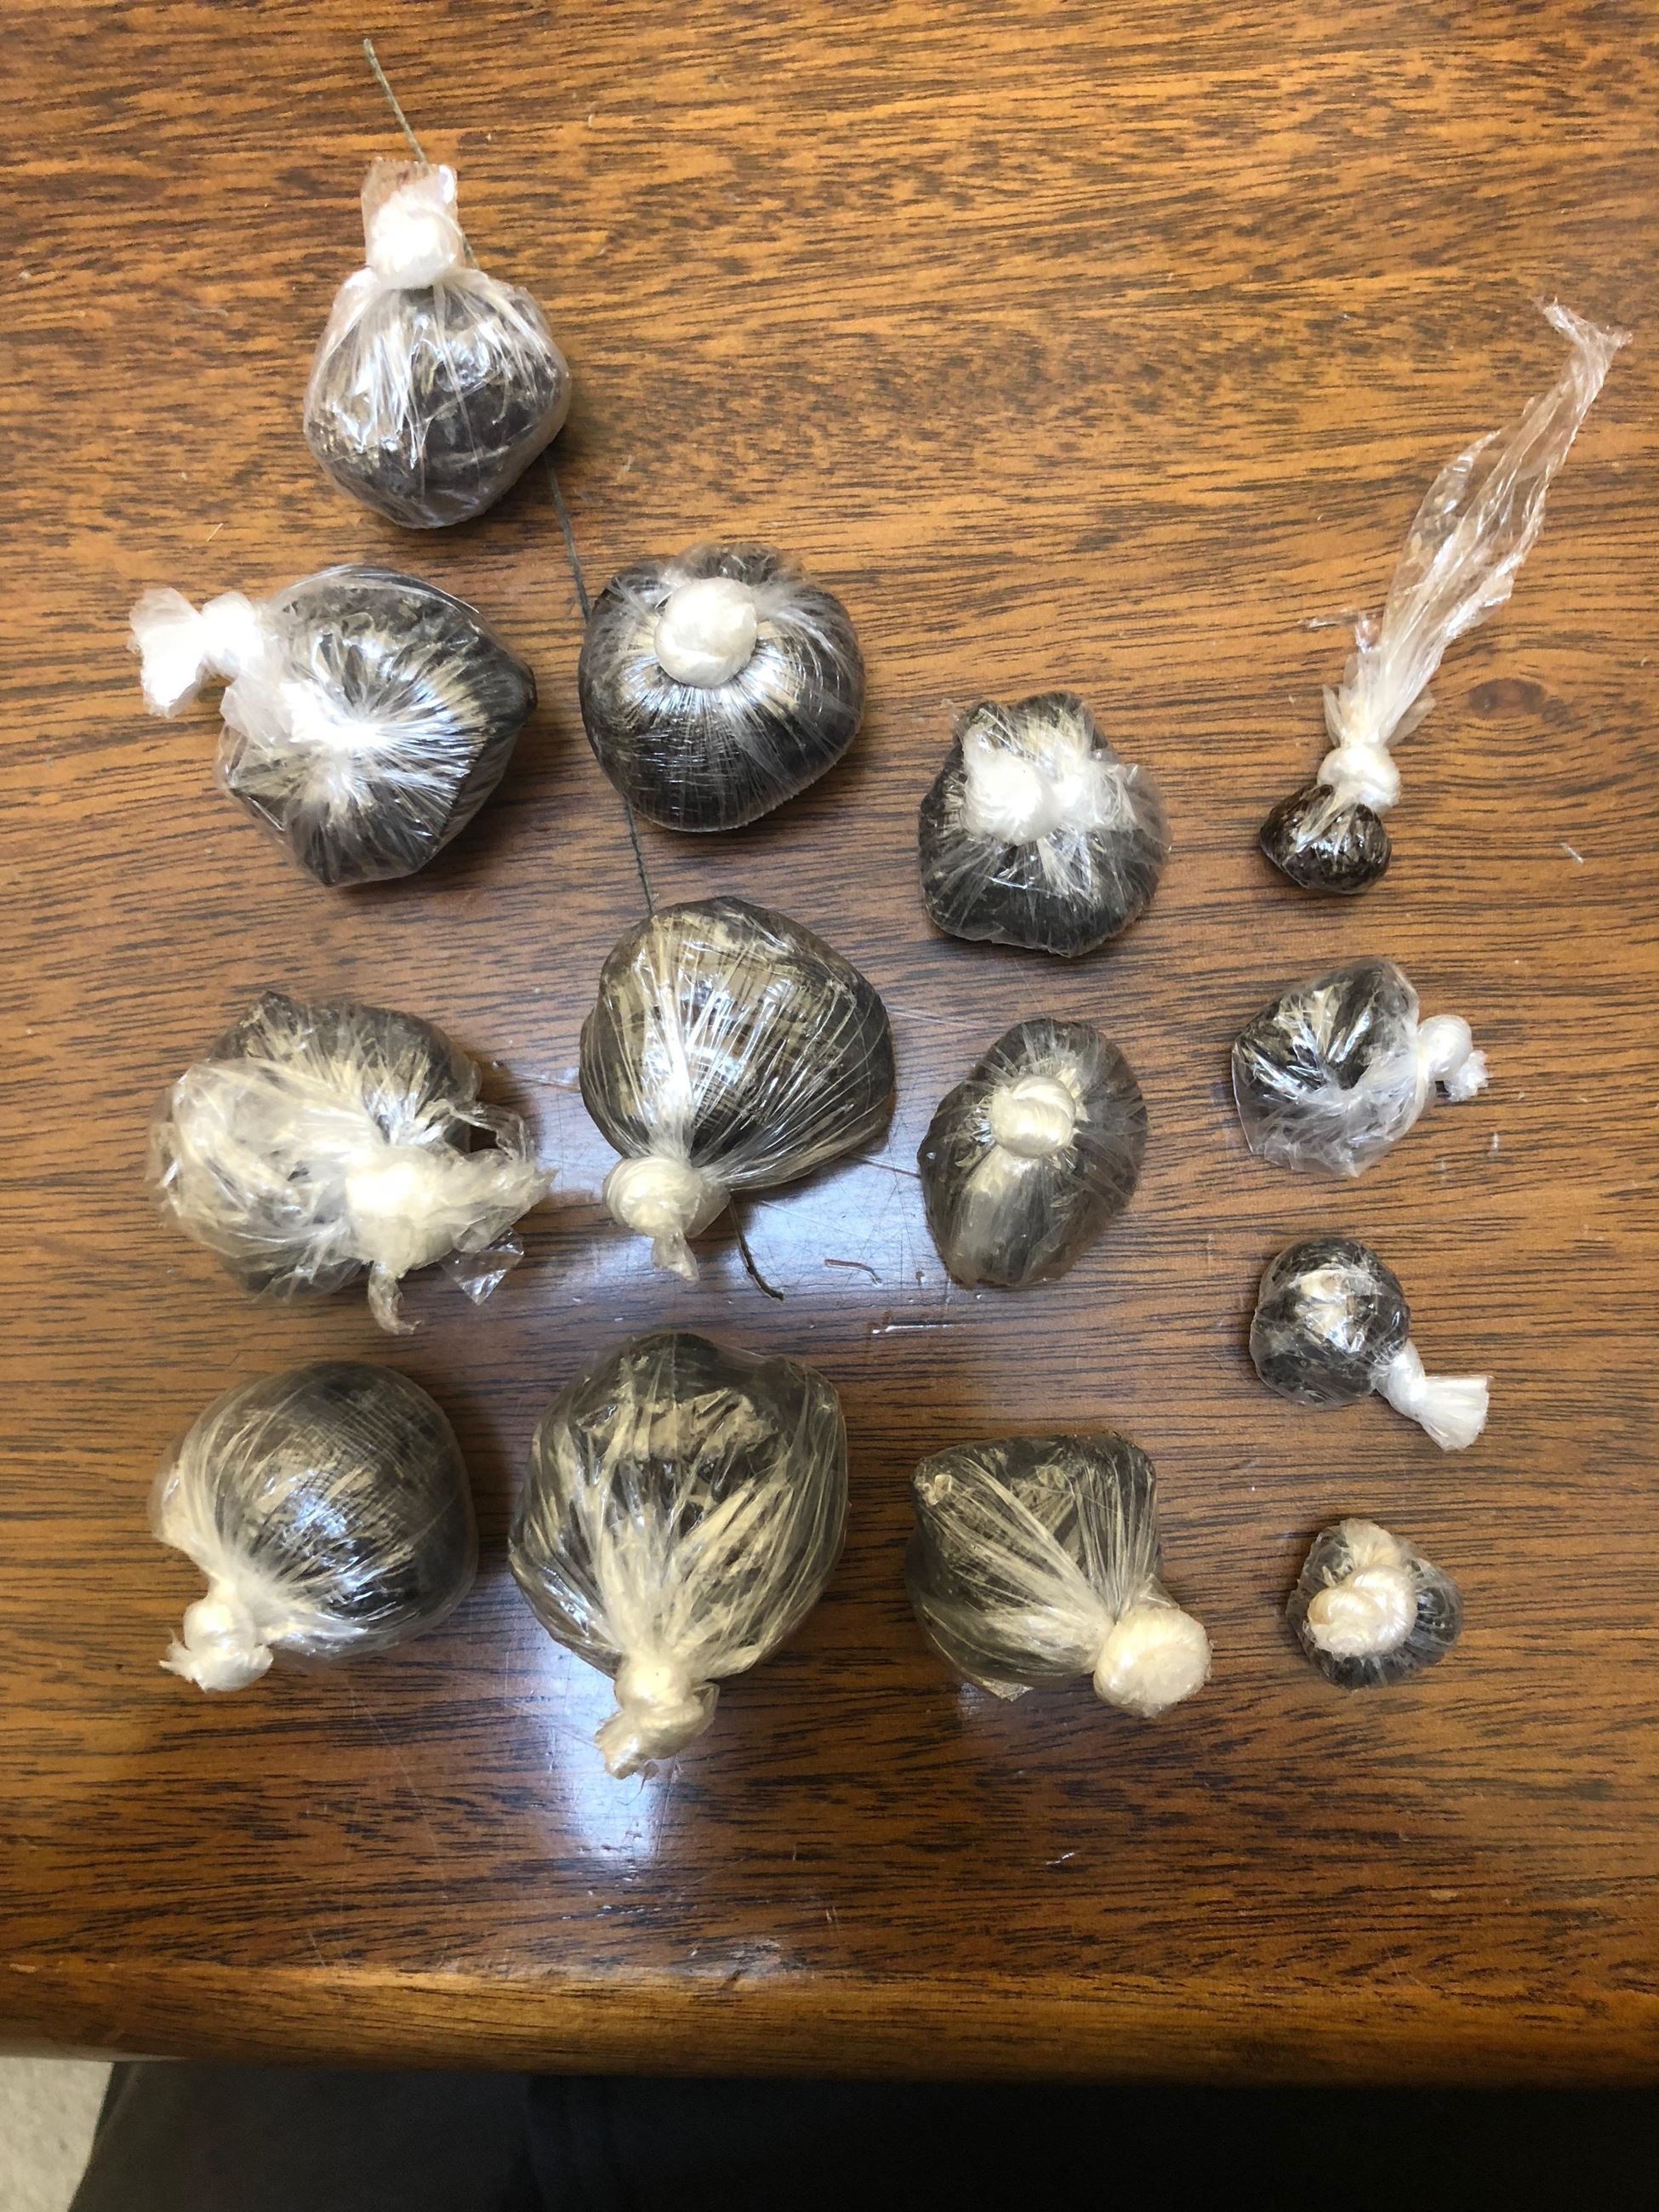 Heroin seized during a DTF operation in 2018.